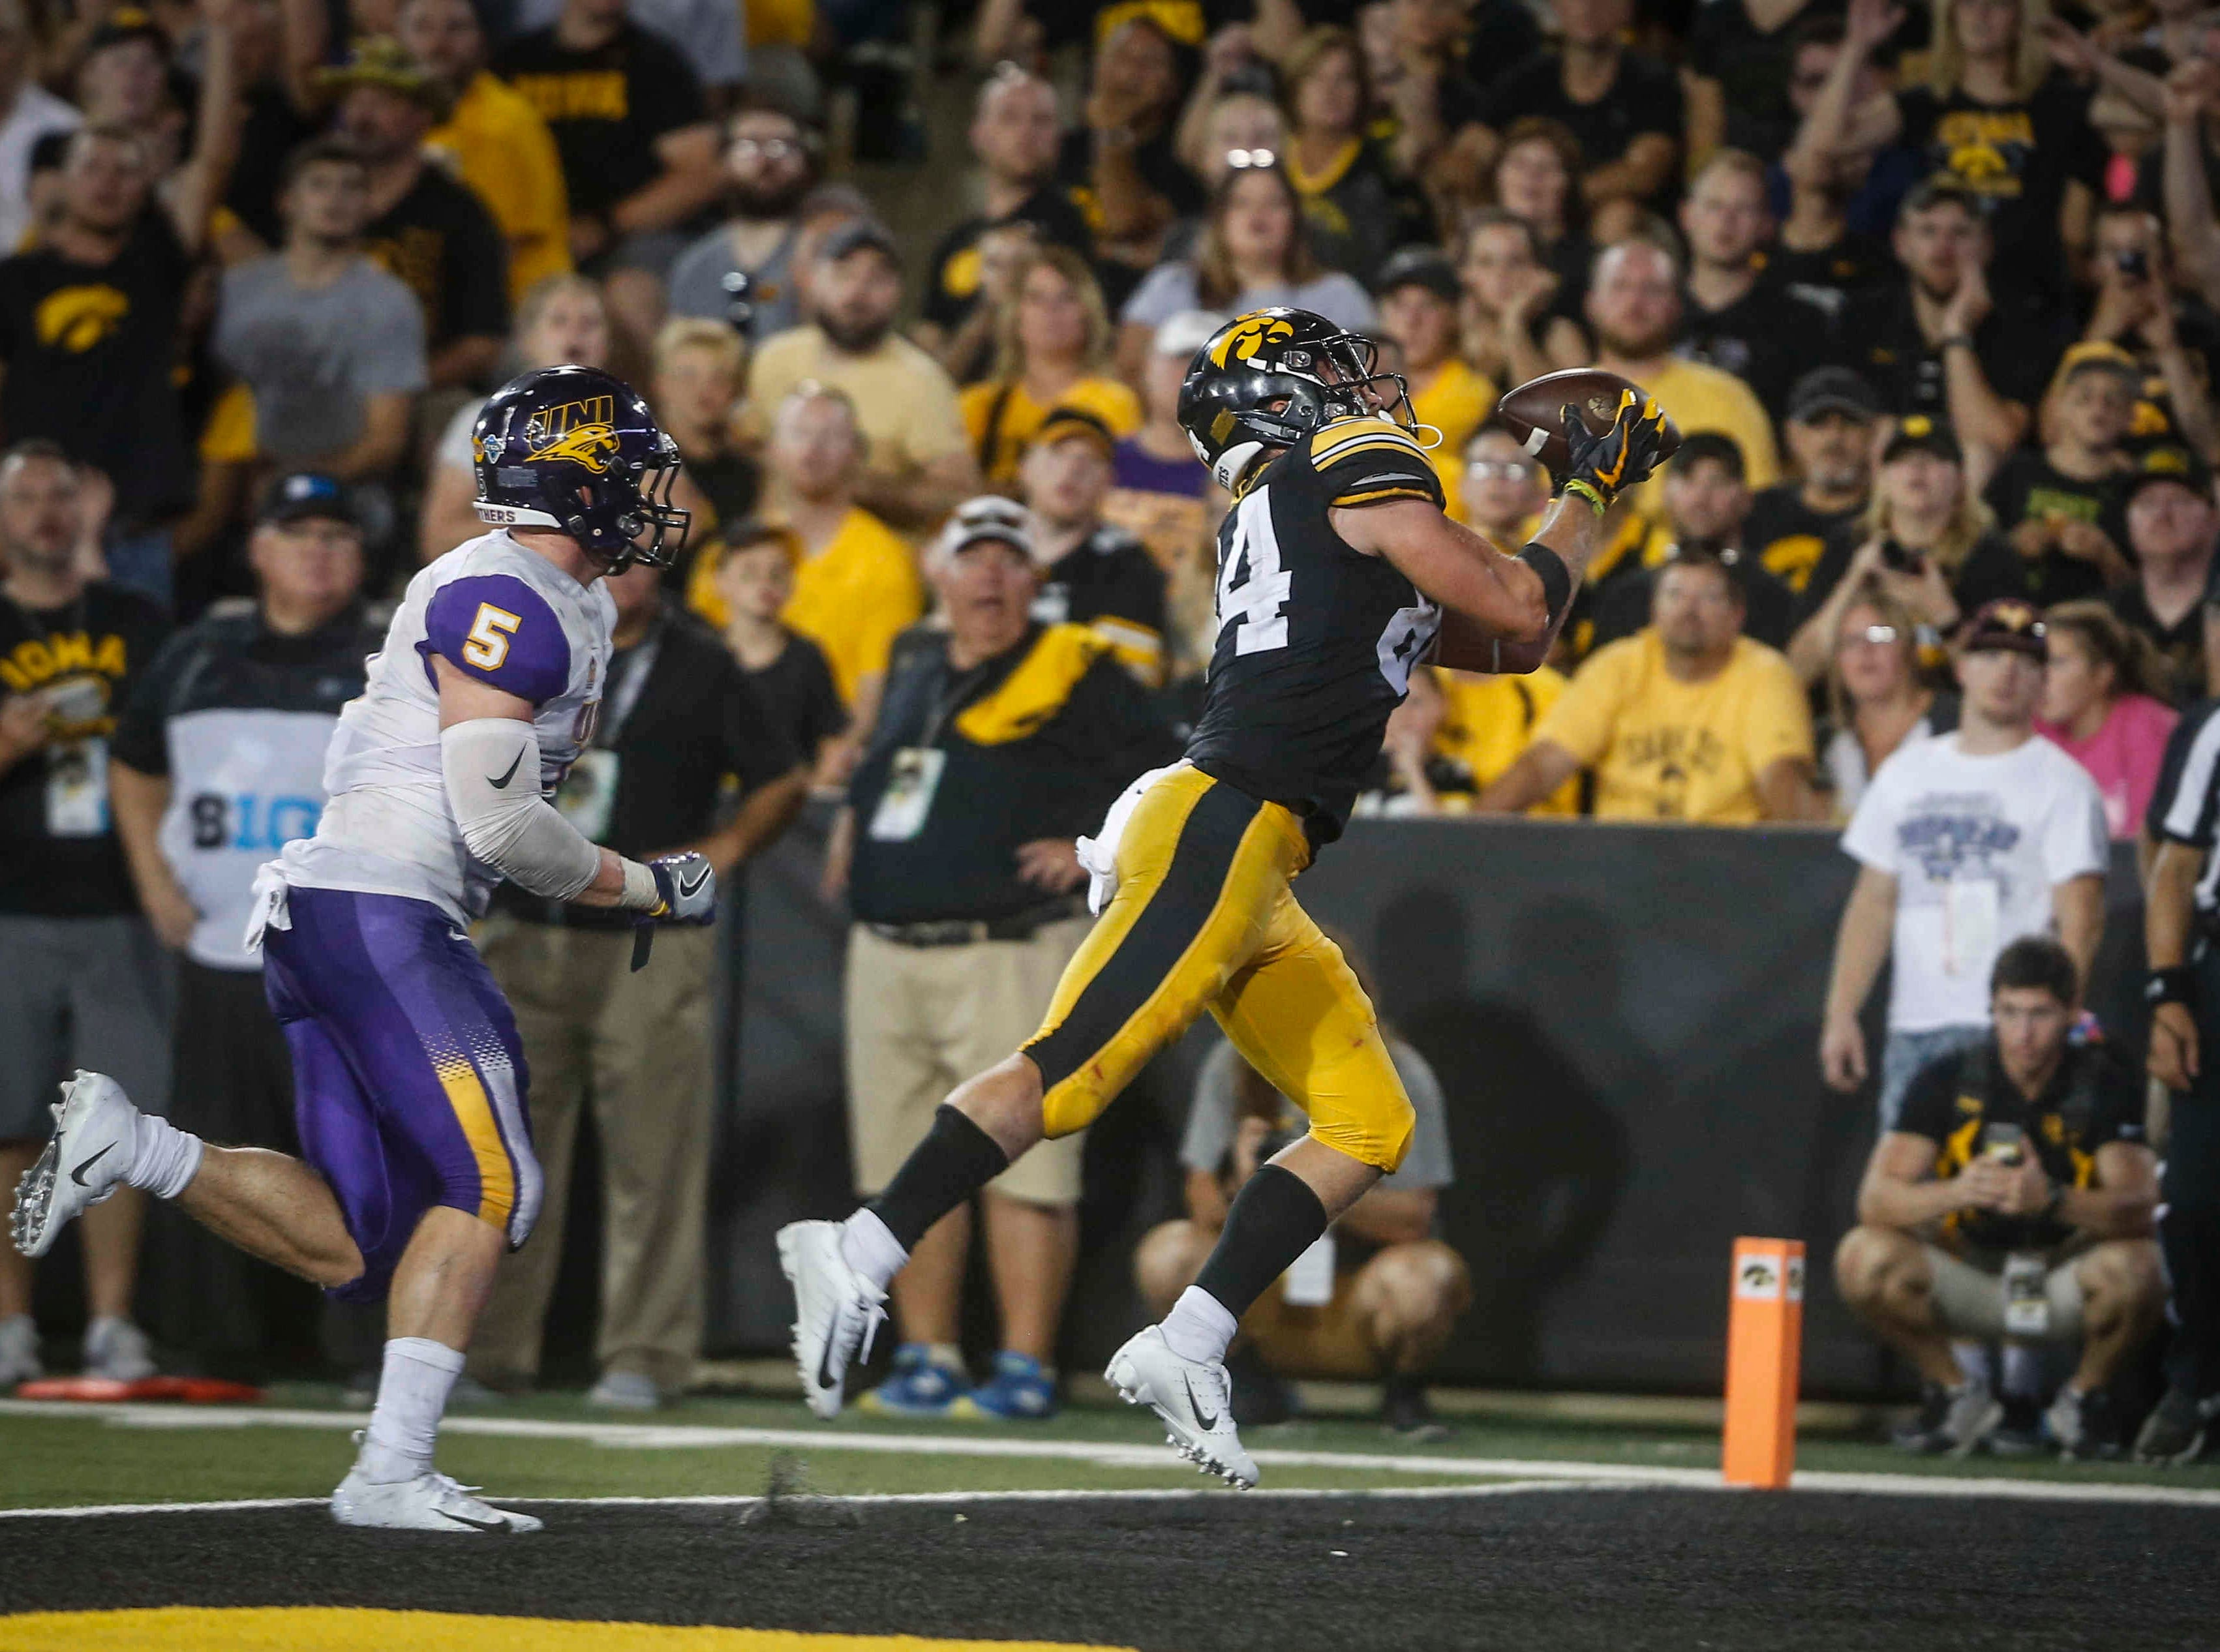 Iowa receiver Nick Easley pulls in a touchdown reception against Northern Iowa in the third quarter on Saturday, Sept. 15, 2018, at Kinnick Stadium in Iowa City.